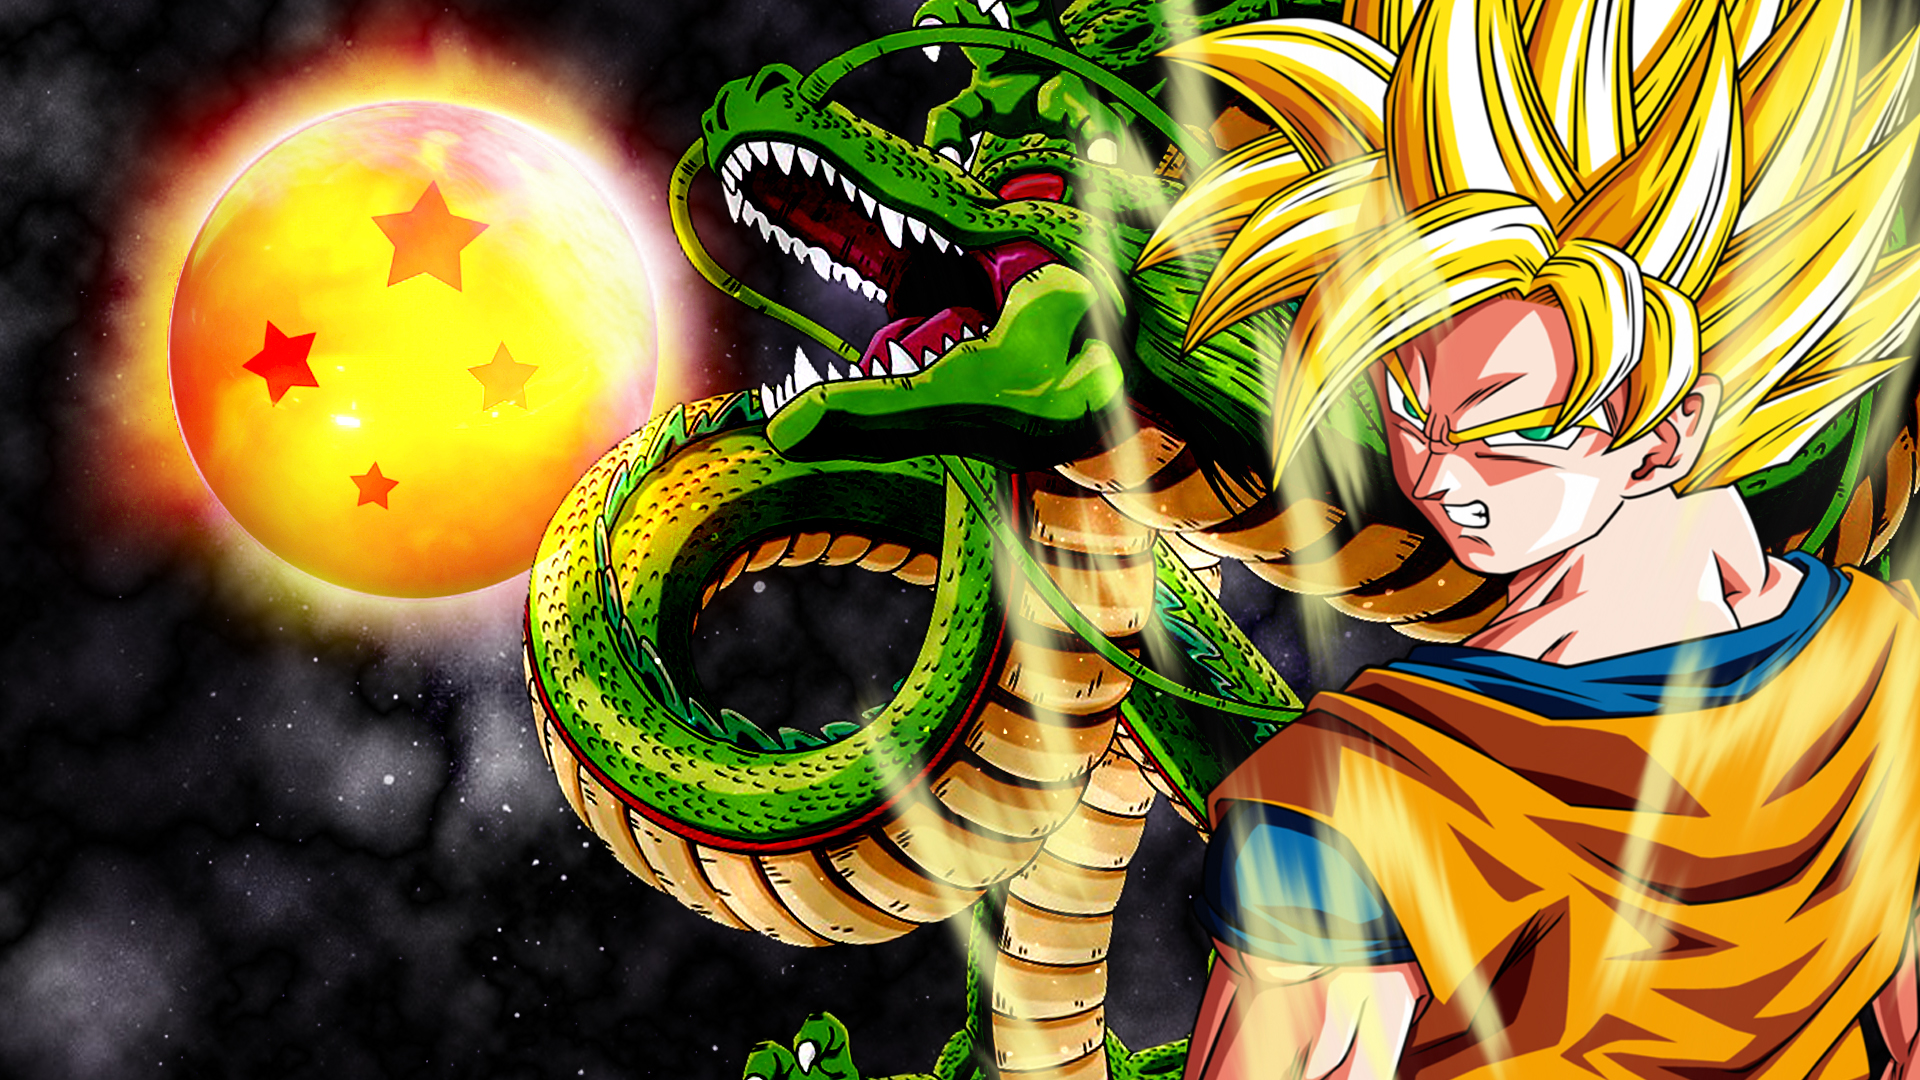 Dragon Ball Z Wallpapers Full HD